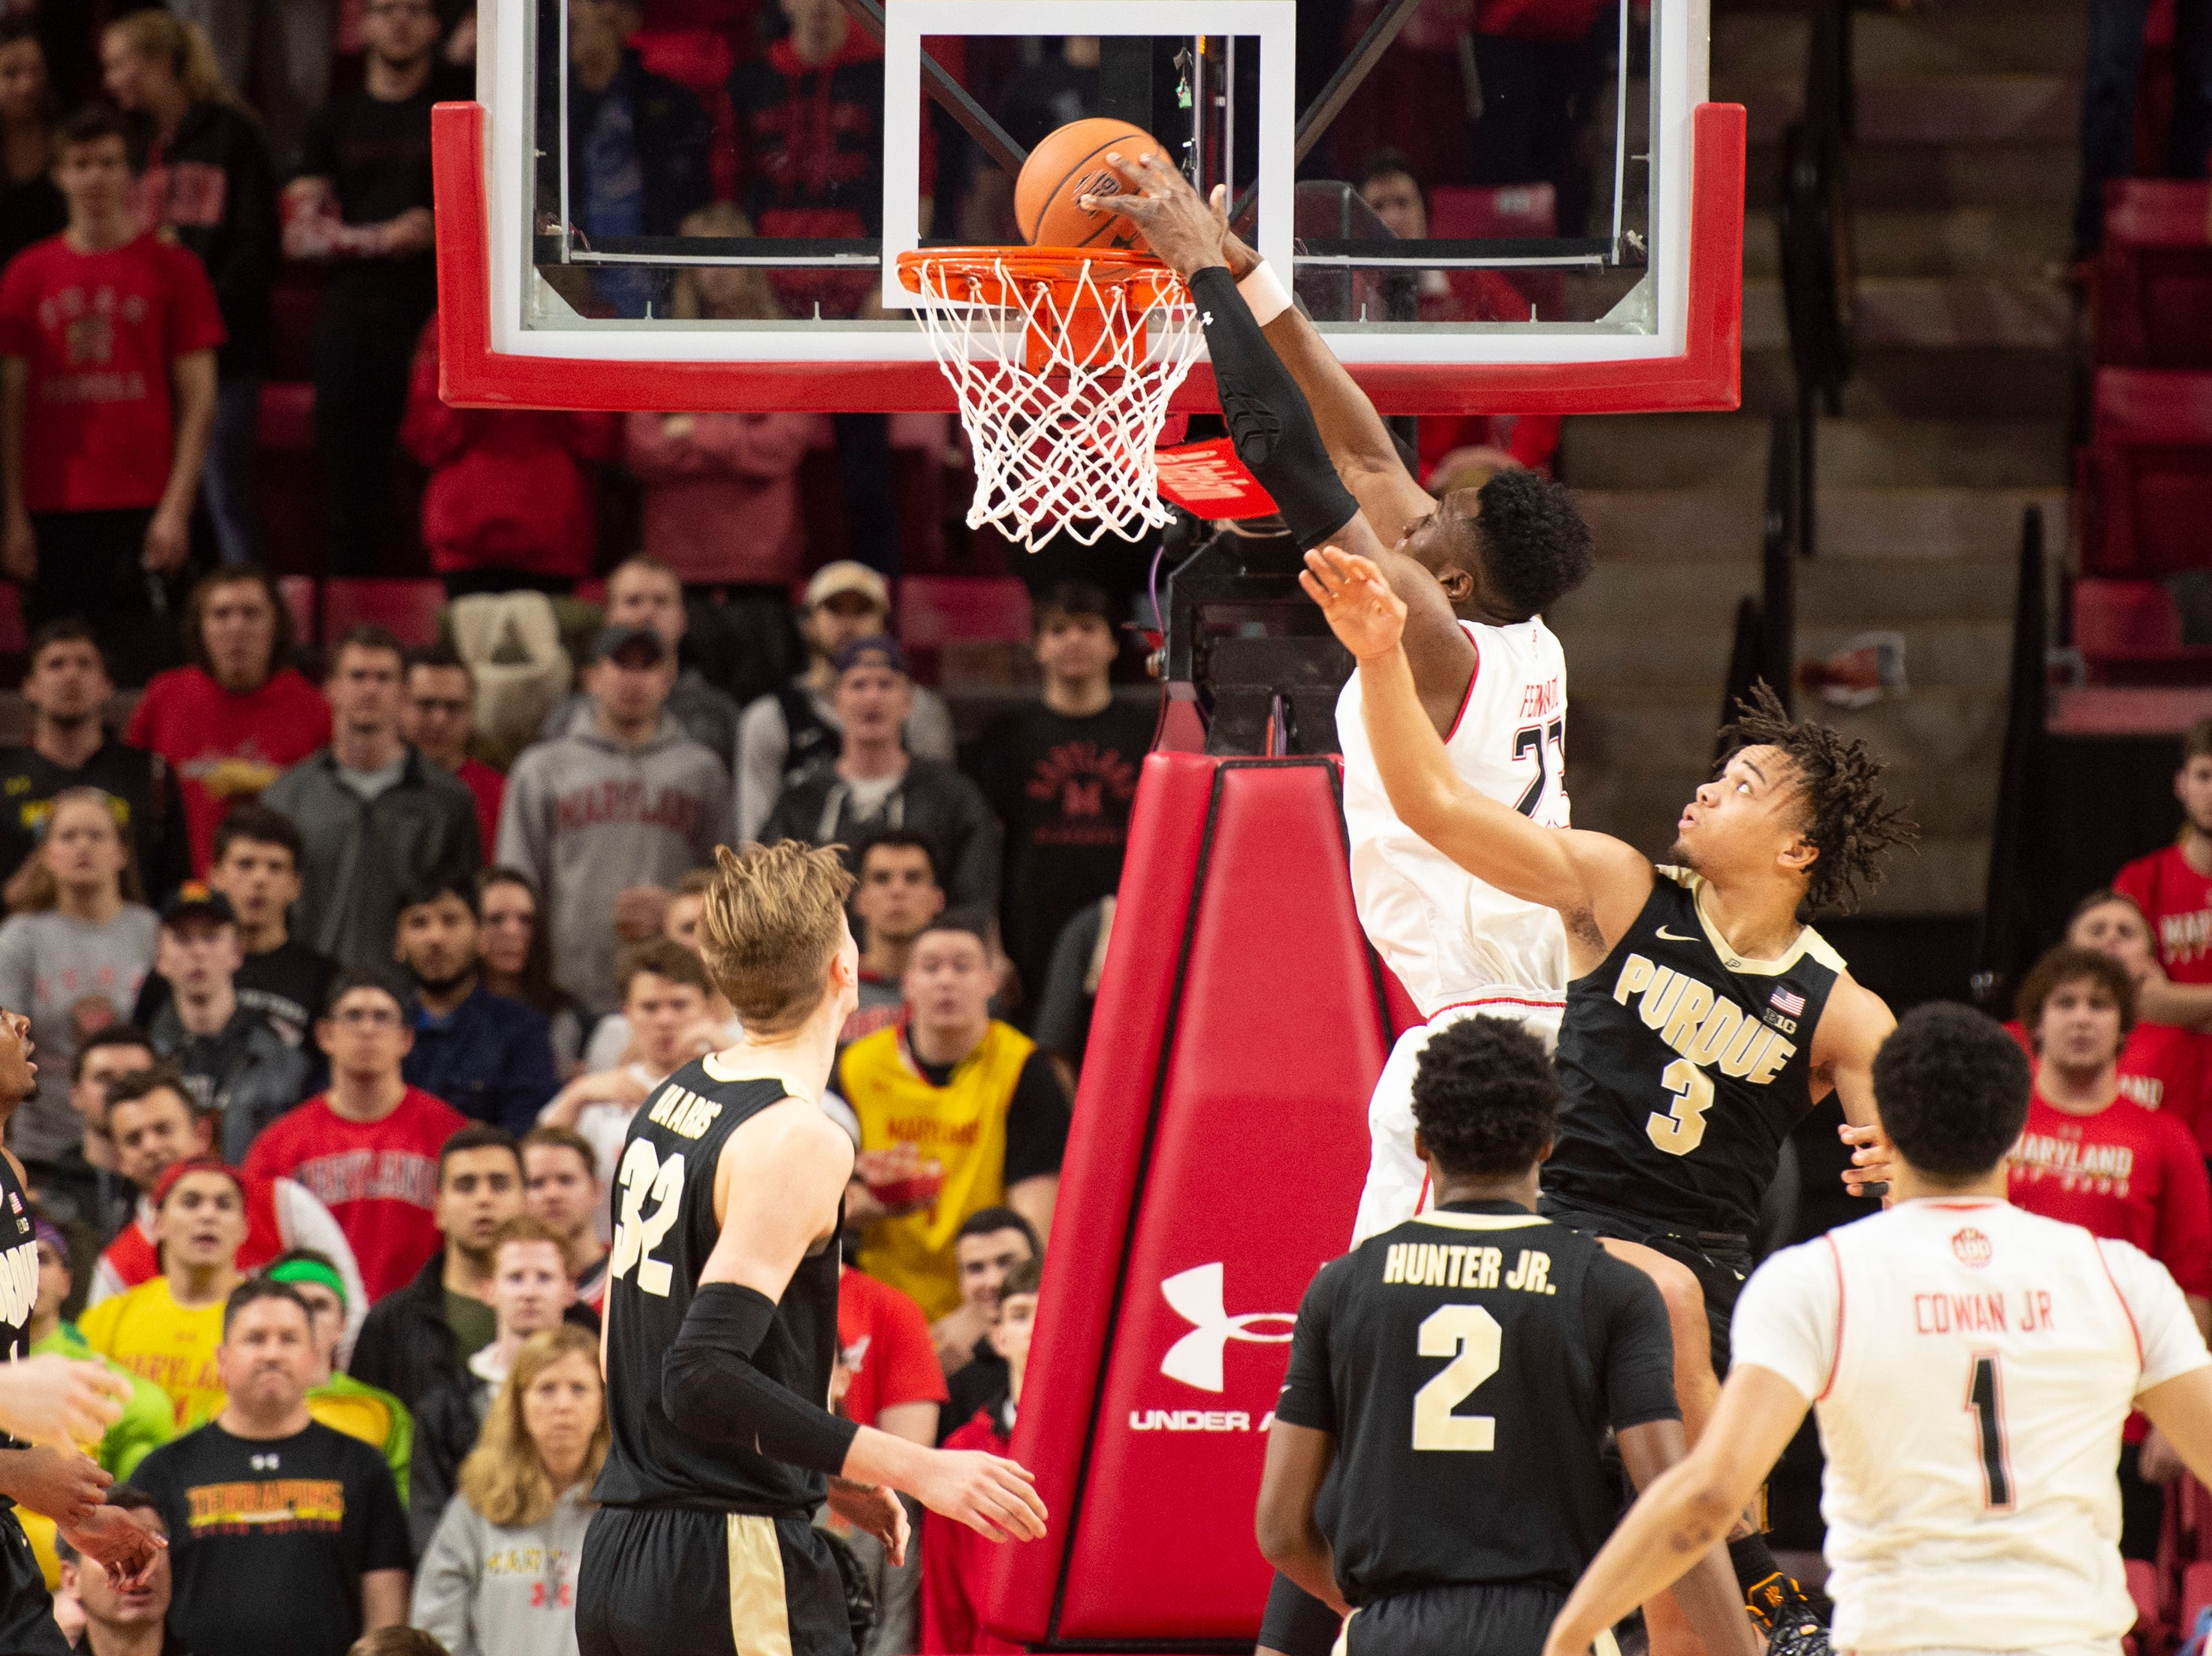 Feb 12, 2019; College Park, MD, USA; Maryland Terrapins forward Bruno Fernando (23) dunks as Purdue Boilermakers guard Carsen Edwards (3) defends during the first half at XFINITY Center. Mandatory Credit: Tommy Gilligan-USA TODAY Sports